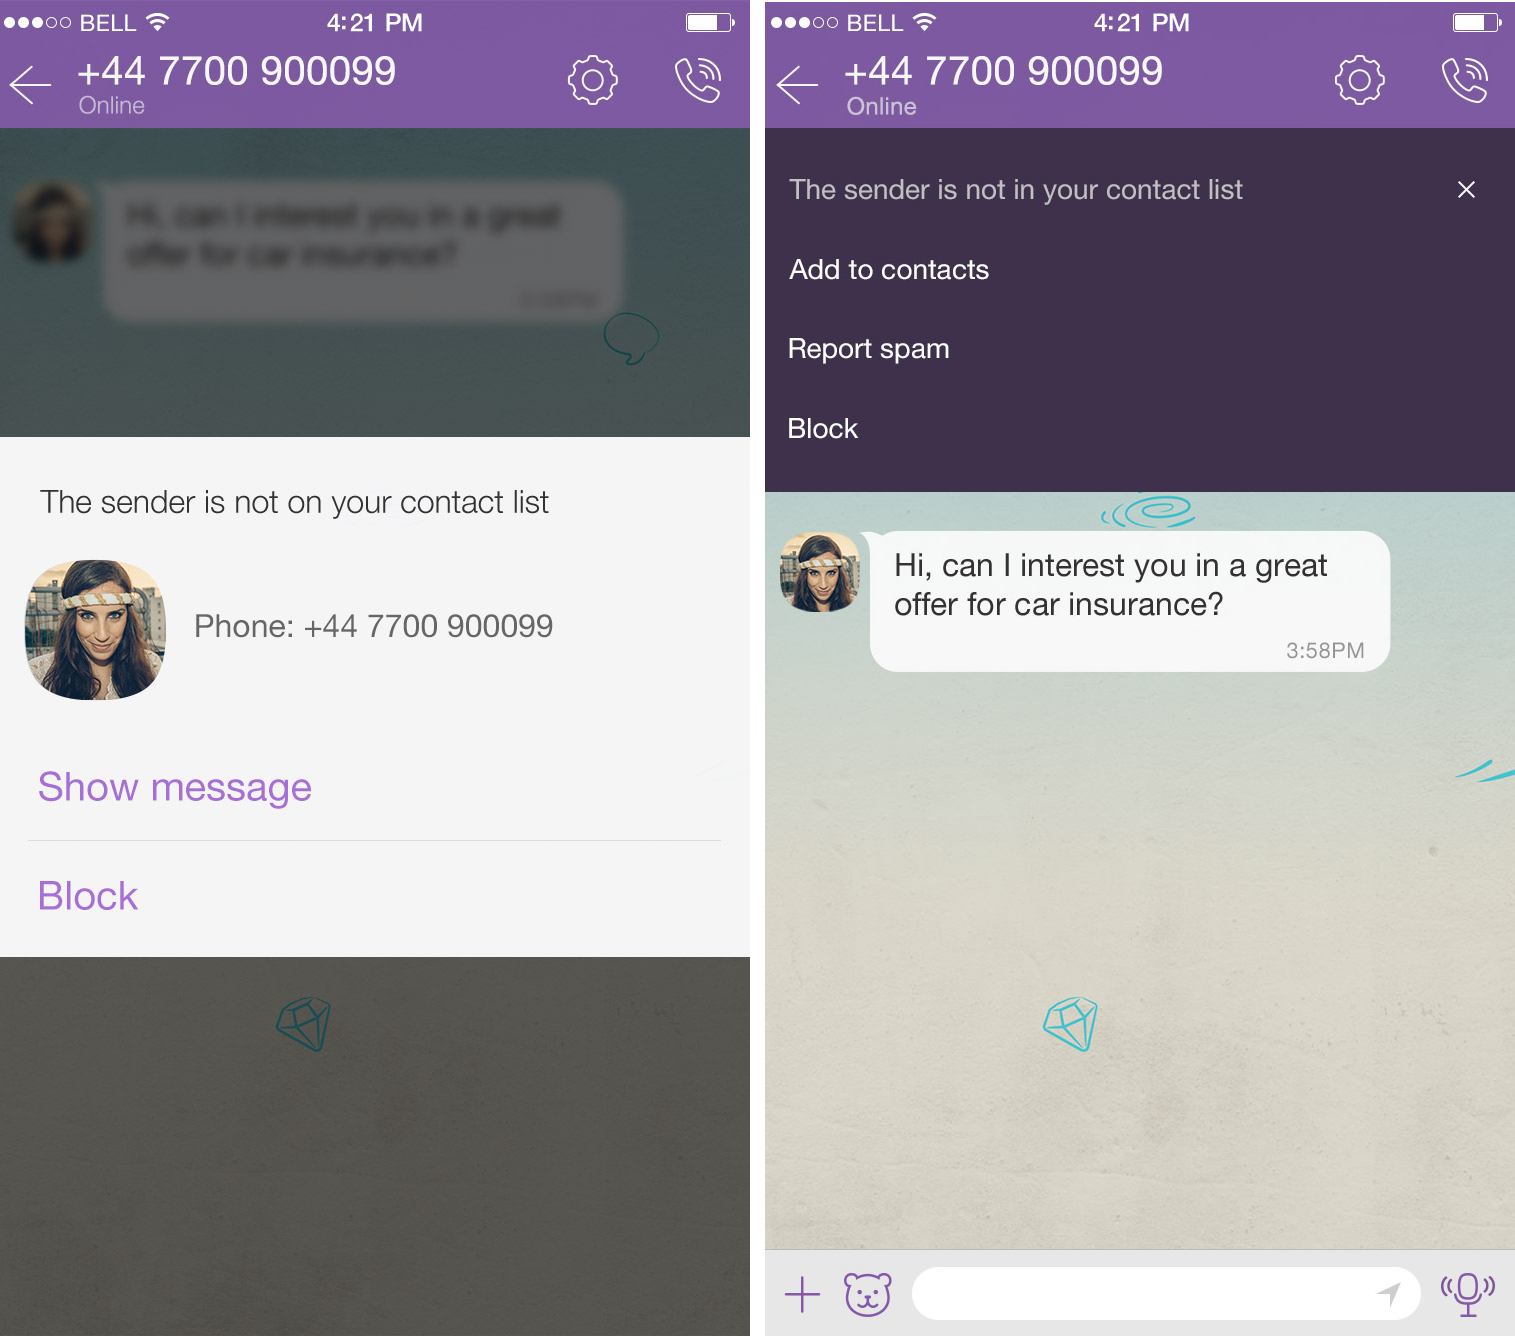 Viber for iOS spam filtering iPhone screenshot 001